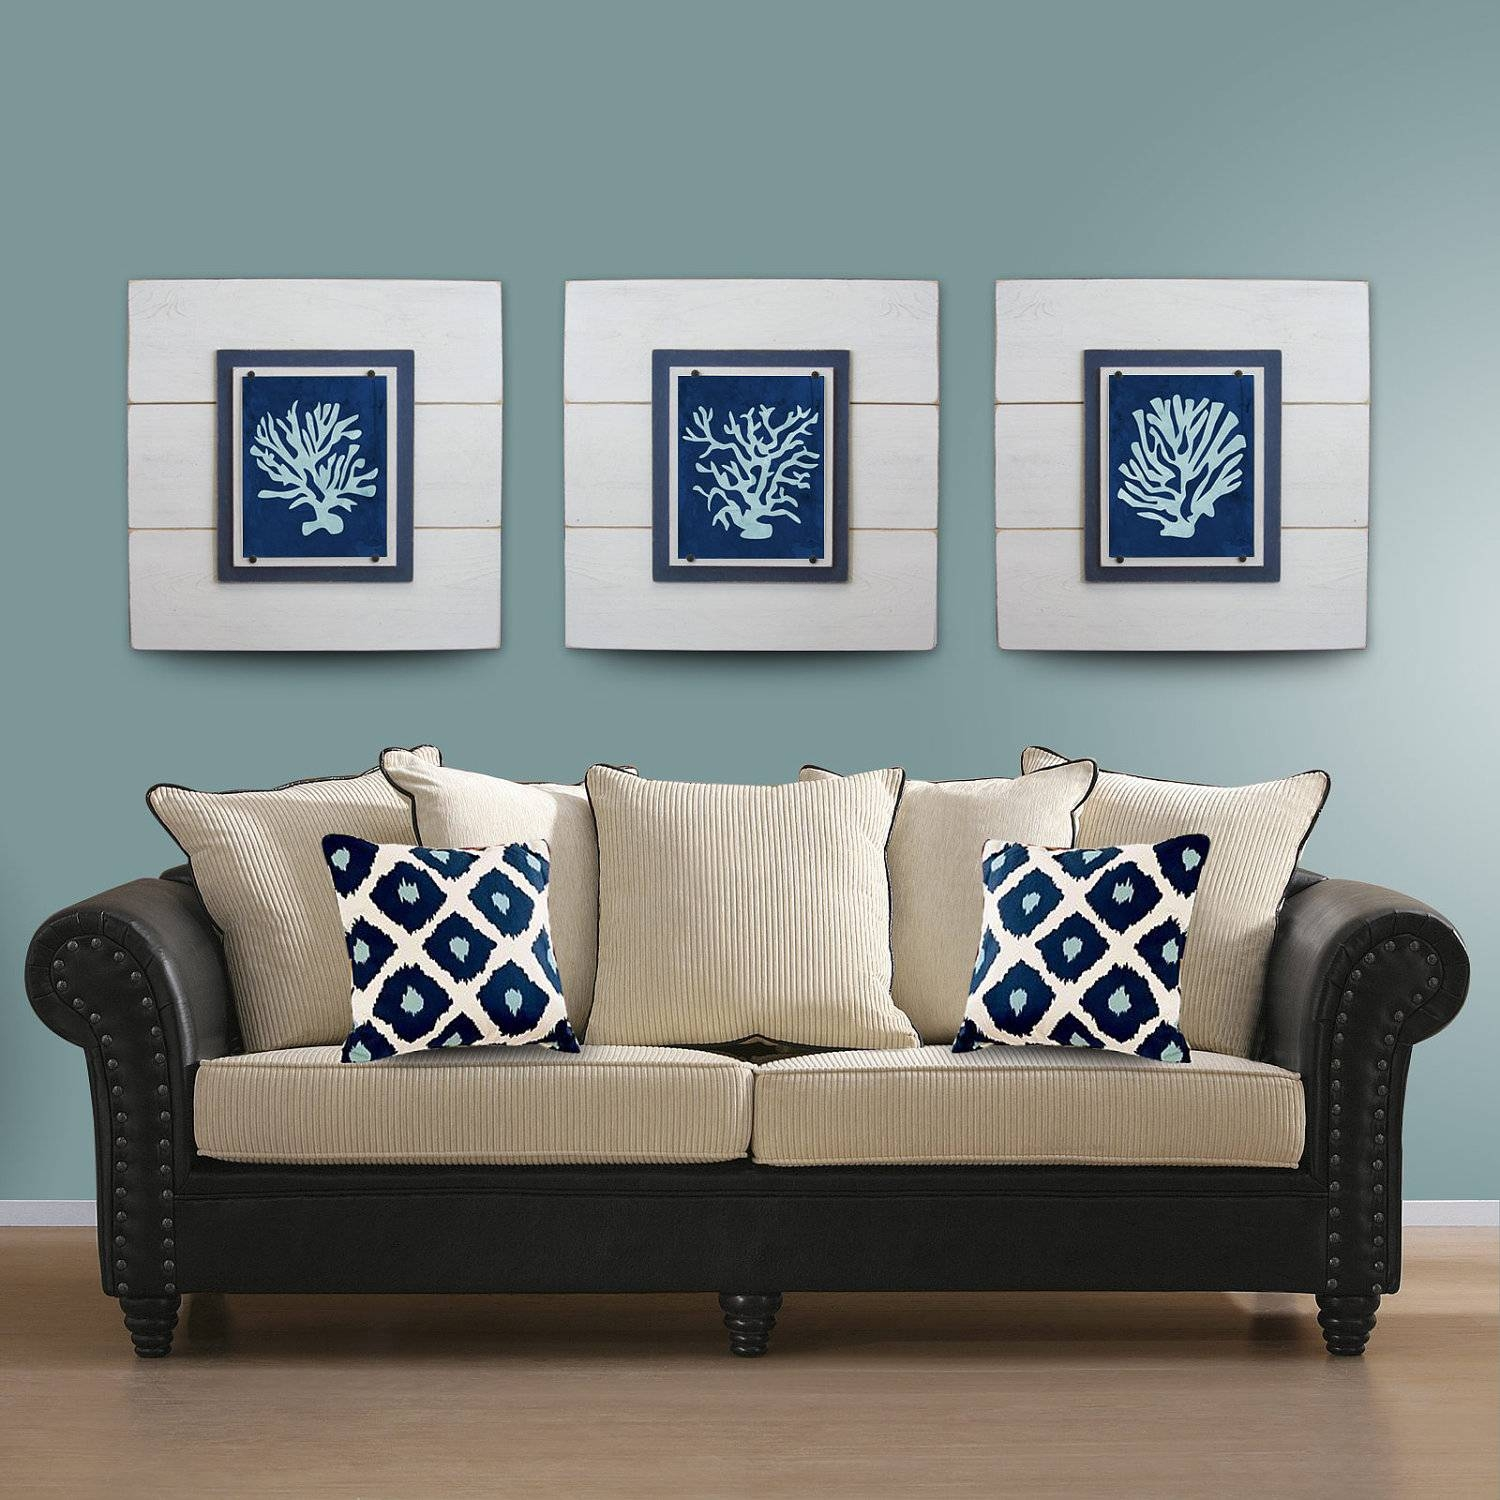 Articles With Large Framed Wall Art Tag: Large Framed Wall Art Regarding Most Current Large Framed Wall Art (View 4 of 20)